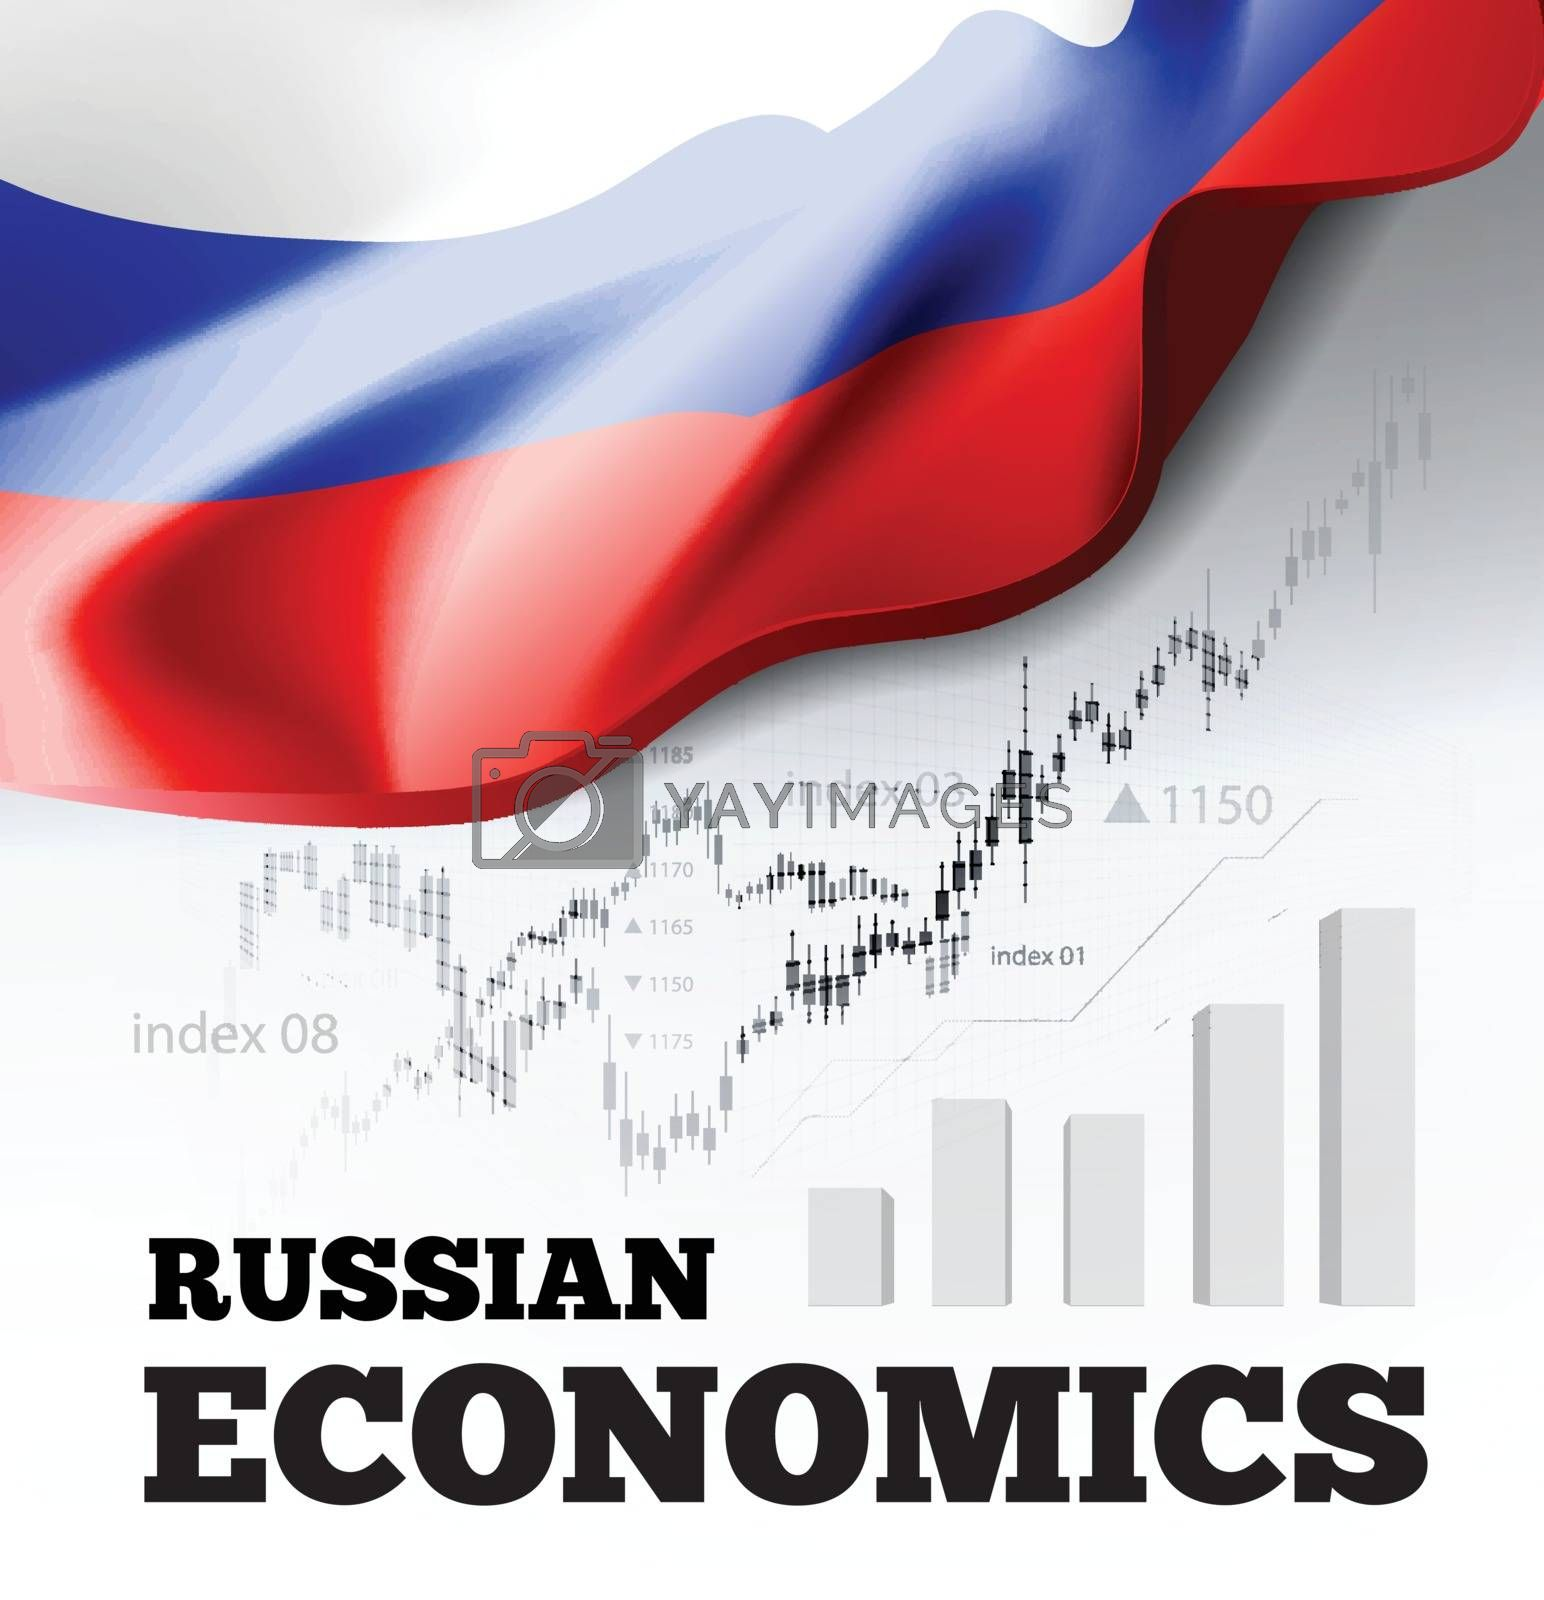 Russian economics vector illustration with Russia flag and business chart, bar chart stock numbers bull market, uptrend line graph symbolizes the welfare growth